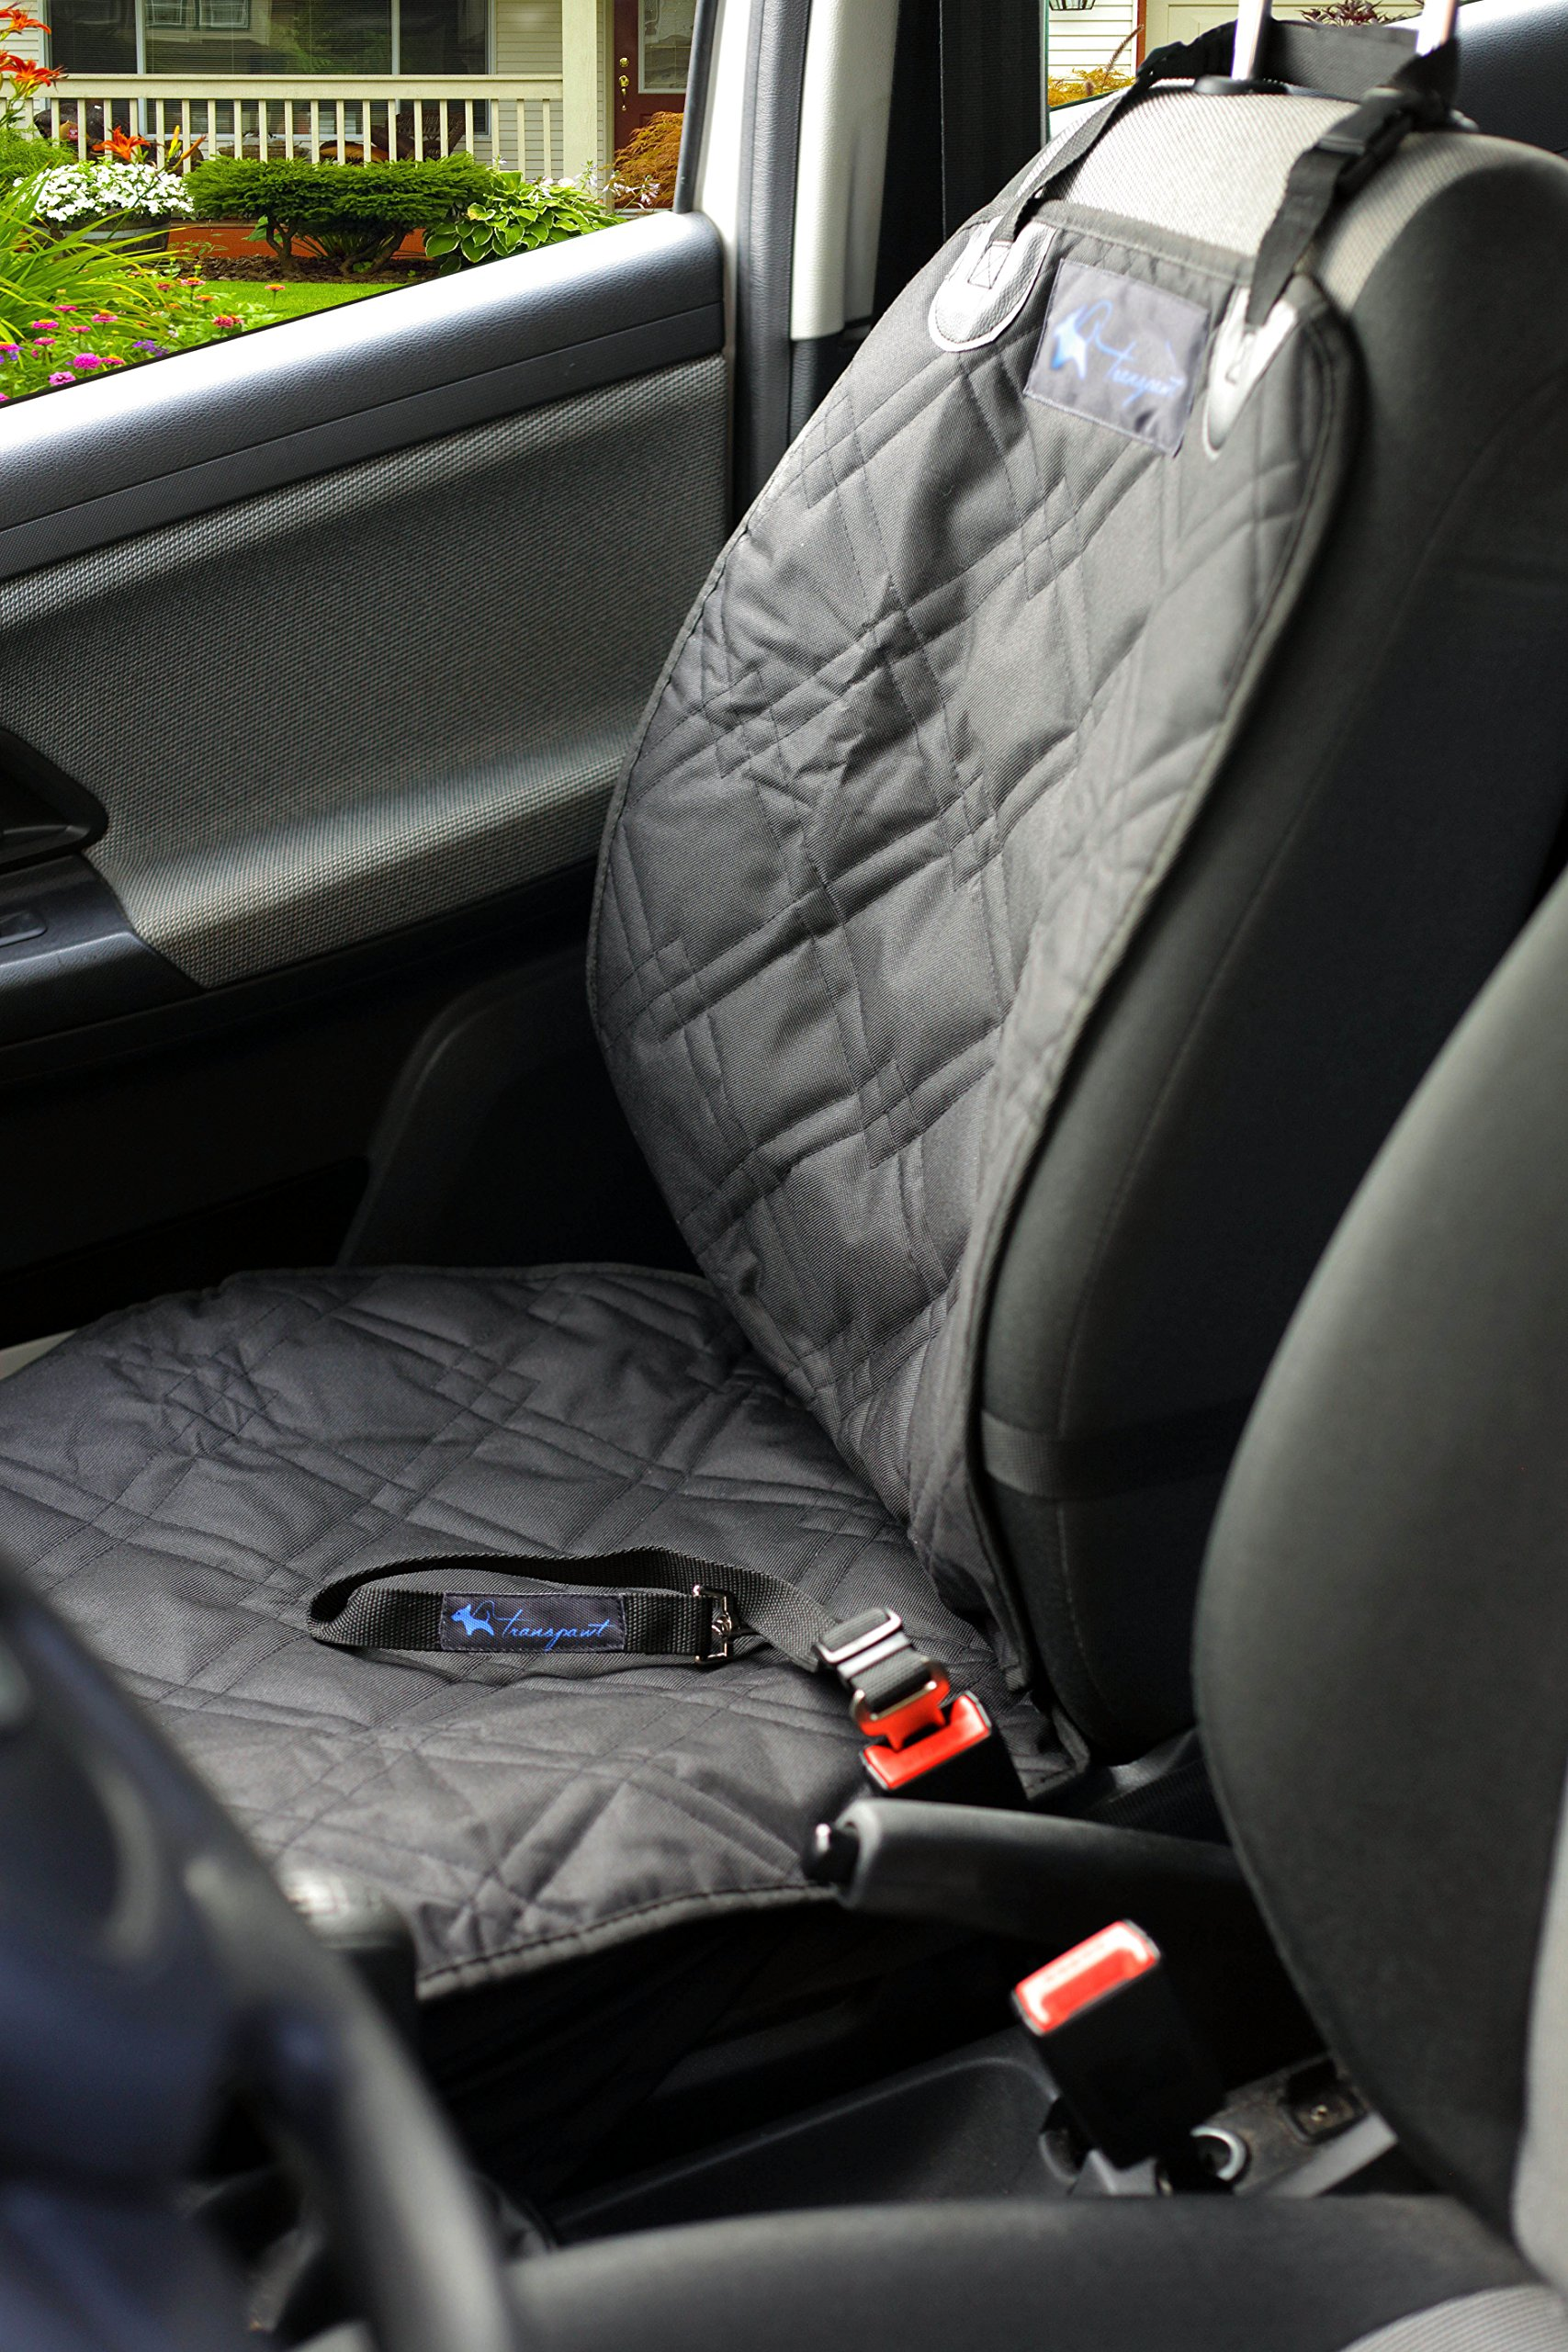 Napa Auto Parts Truck Seat Covers Velcromag